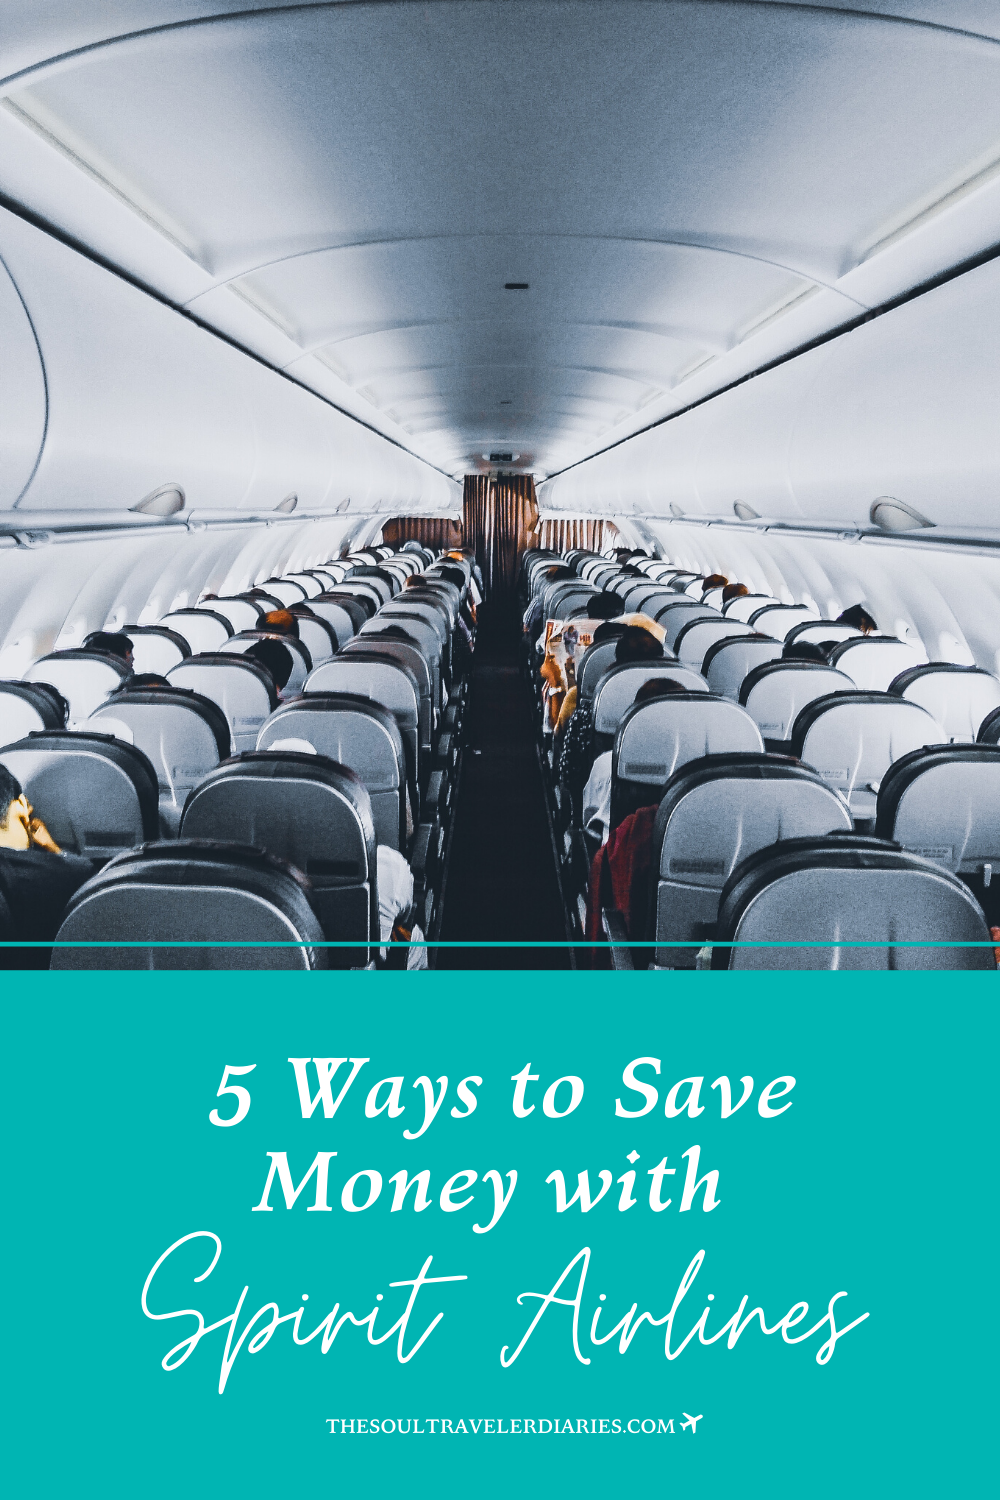 Saving money with budget airlines may seem like overkill. But if you had the choice between a $50 roundtrip ticket or a $100 roundtrip ticket, which would you choose? Here are 5 tried and tested steps that save me money on my flights with Spirit every time!! #spiritairlines #budgetairlines #cheapflightdeals #flightdeals